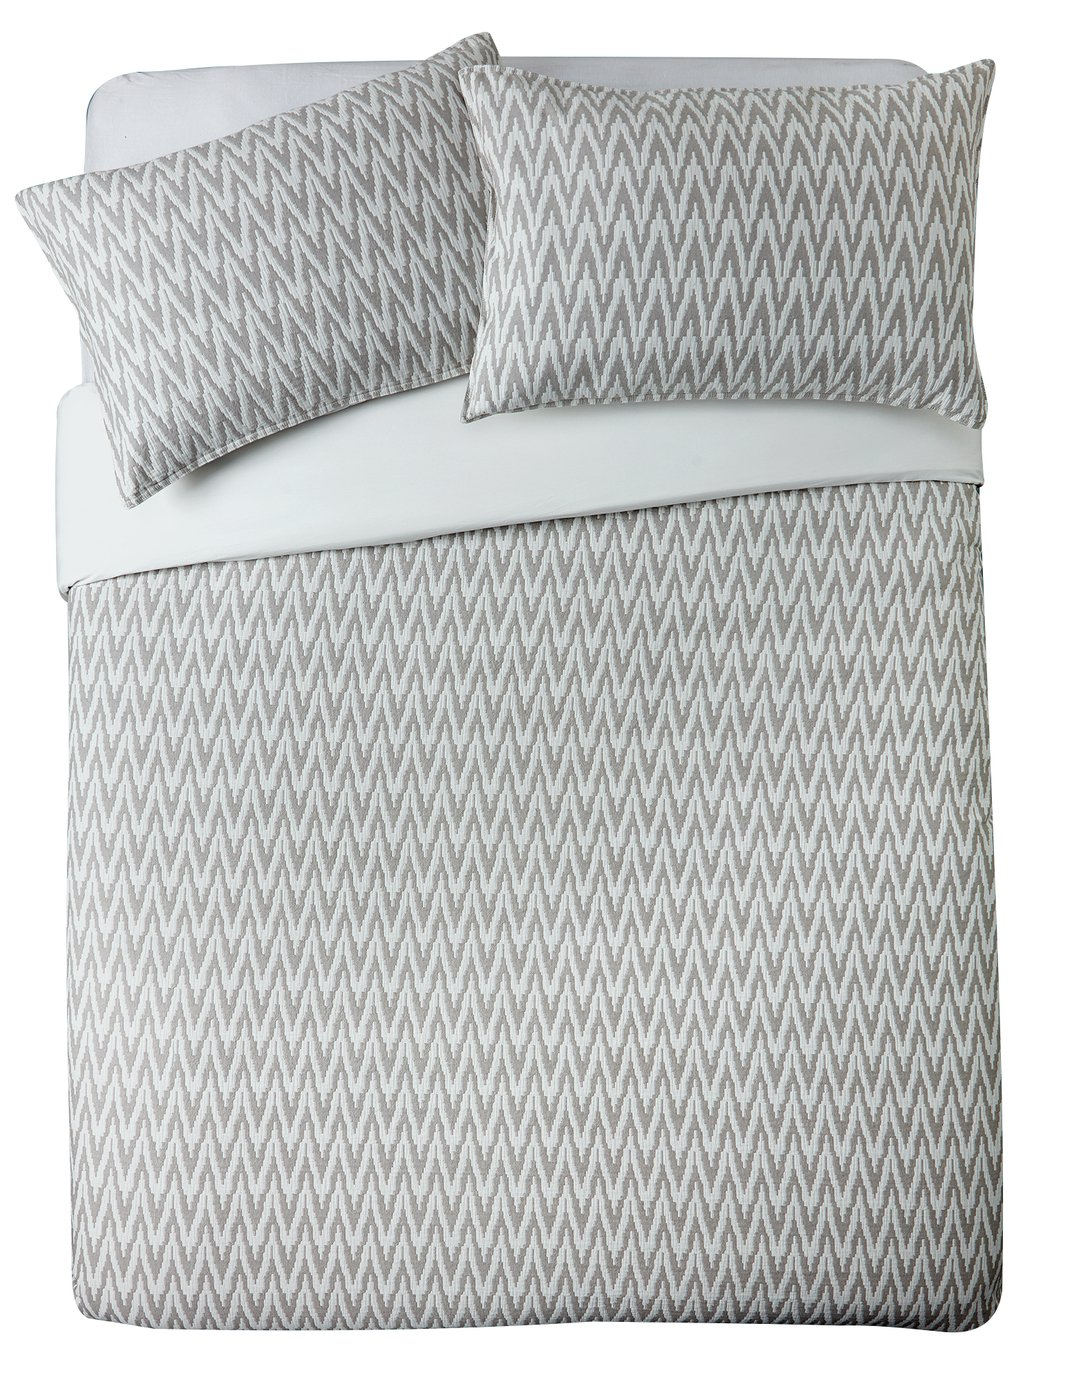 Sainsbury's Home Matelasse Bedding Set - Superking